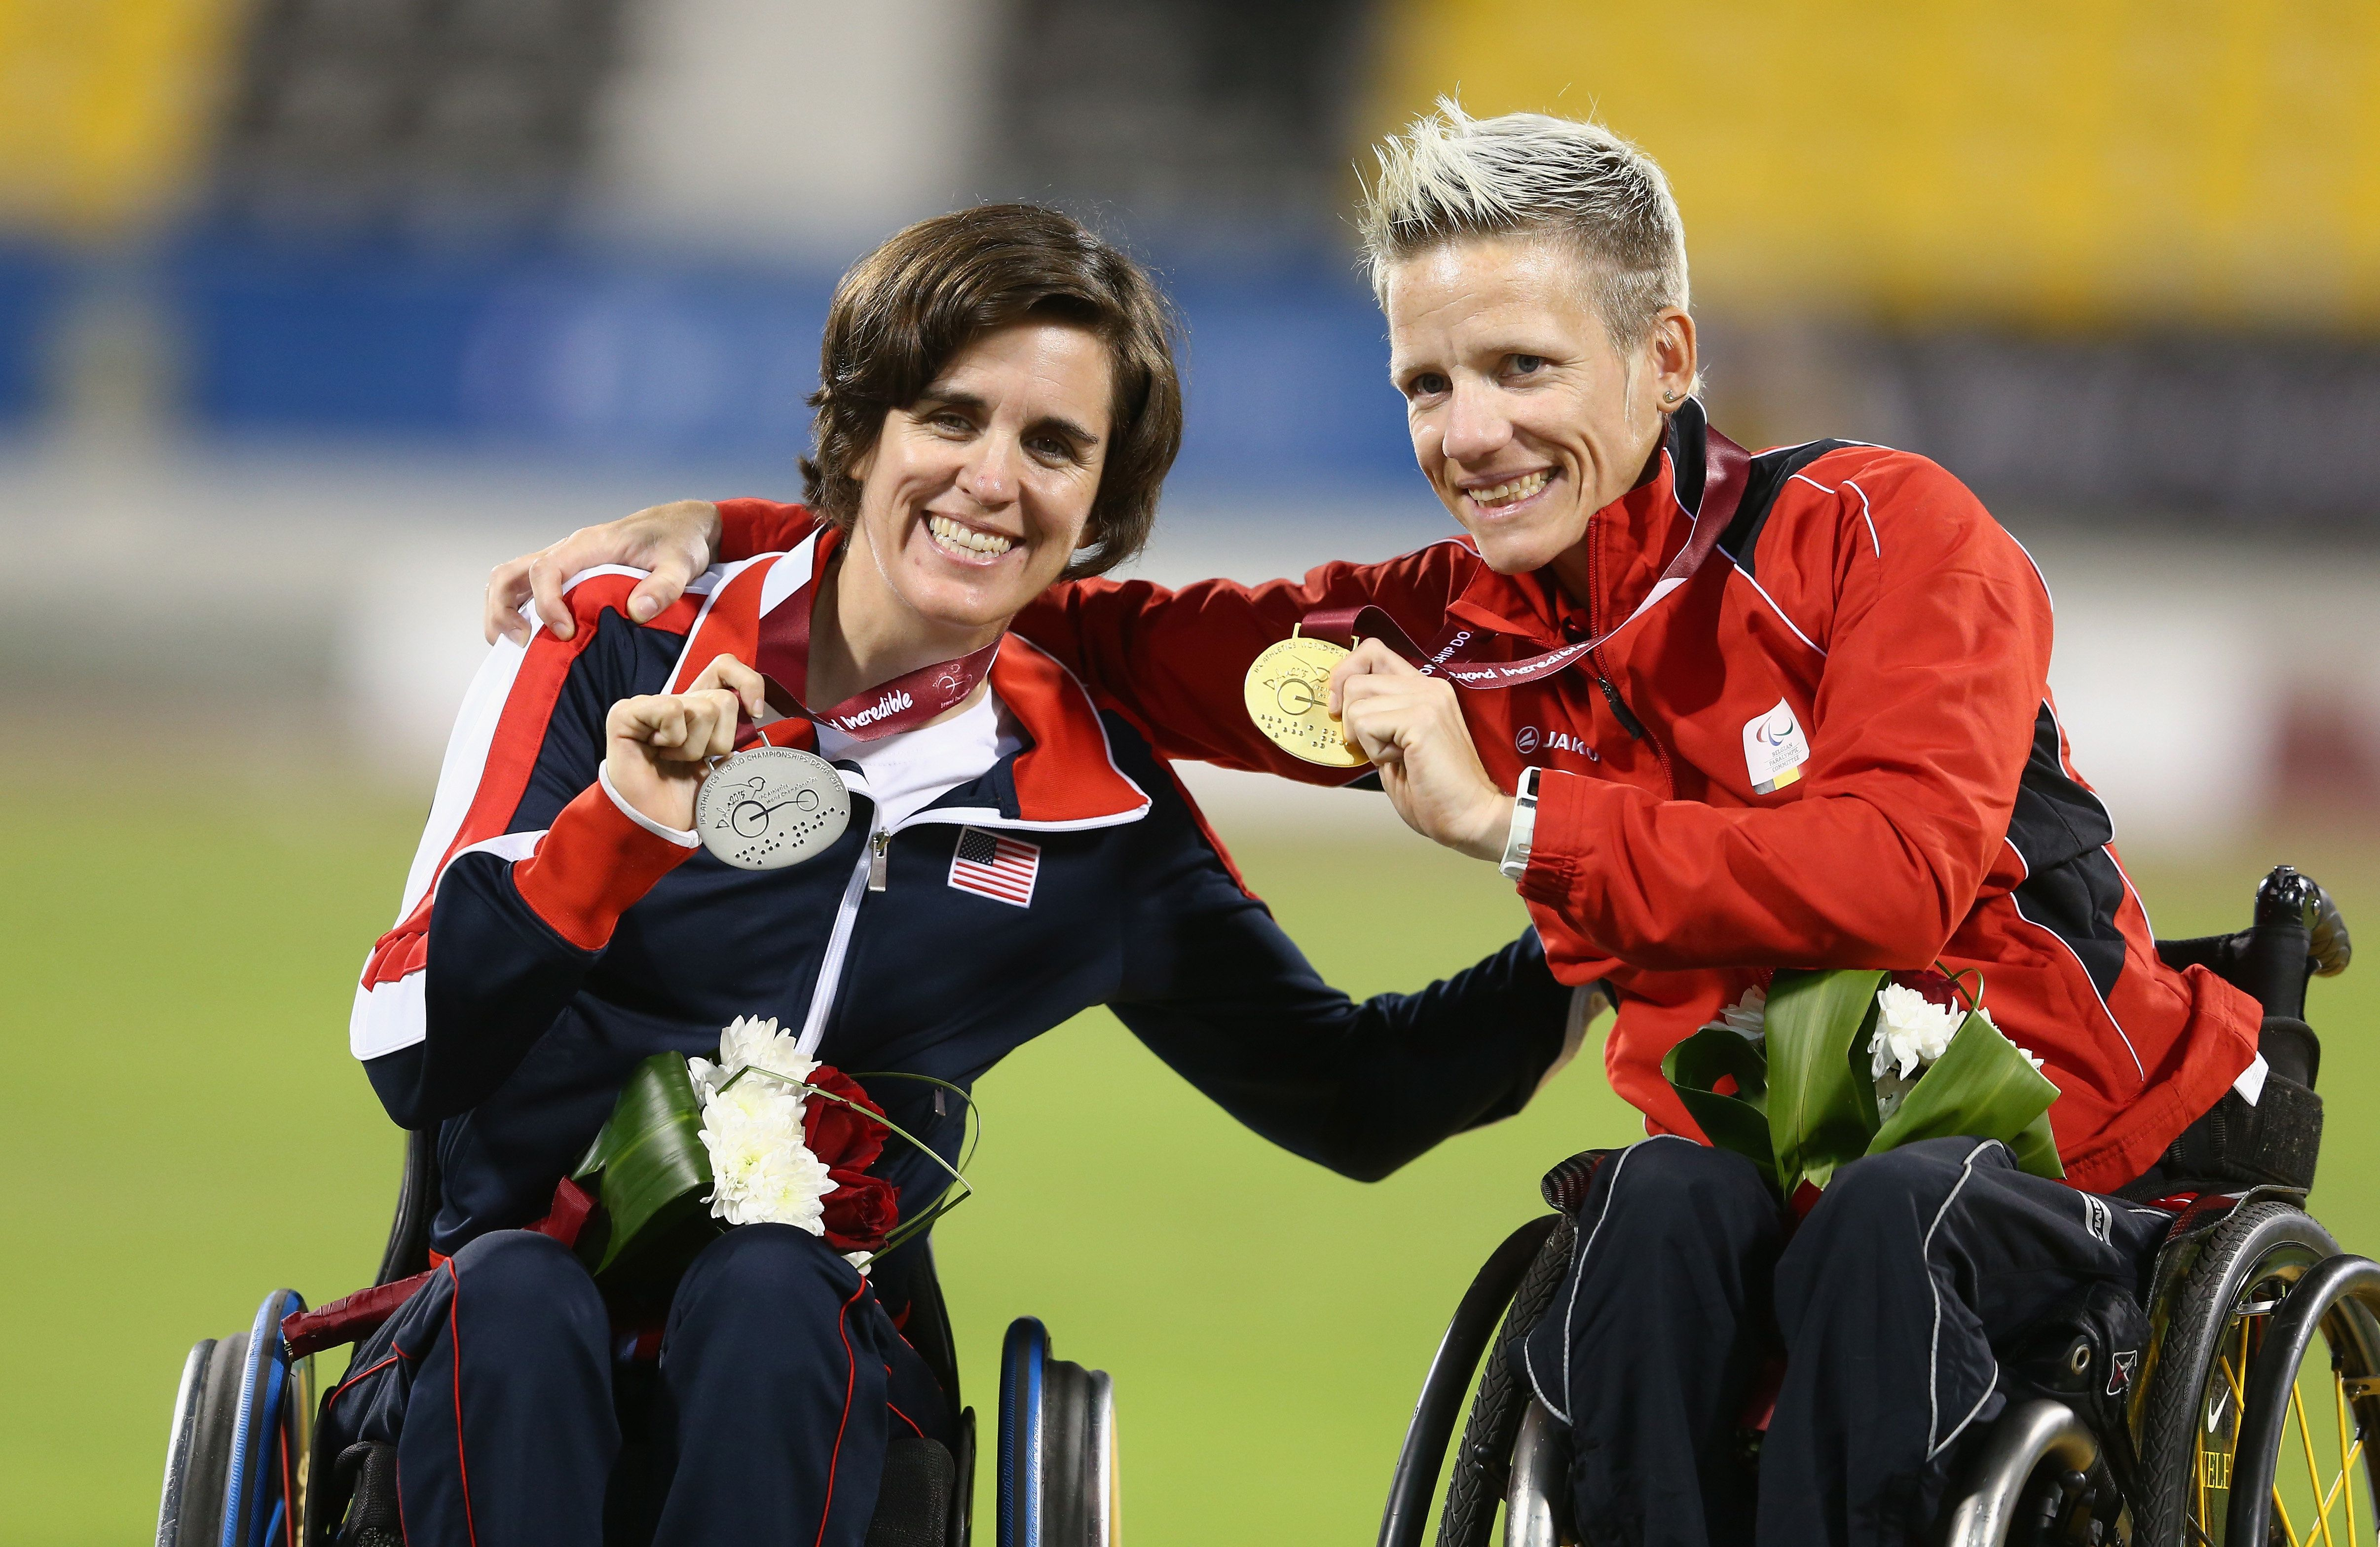 Marieke Vervoort of Belgium (right) celebrates her gold with Kerry Morgan of USA (left) and her silver in the women's 400m T5